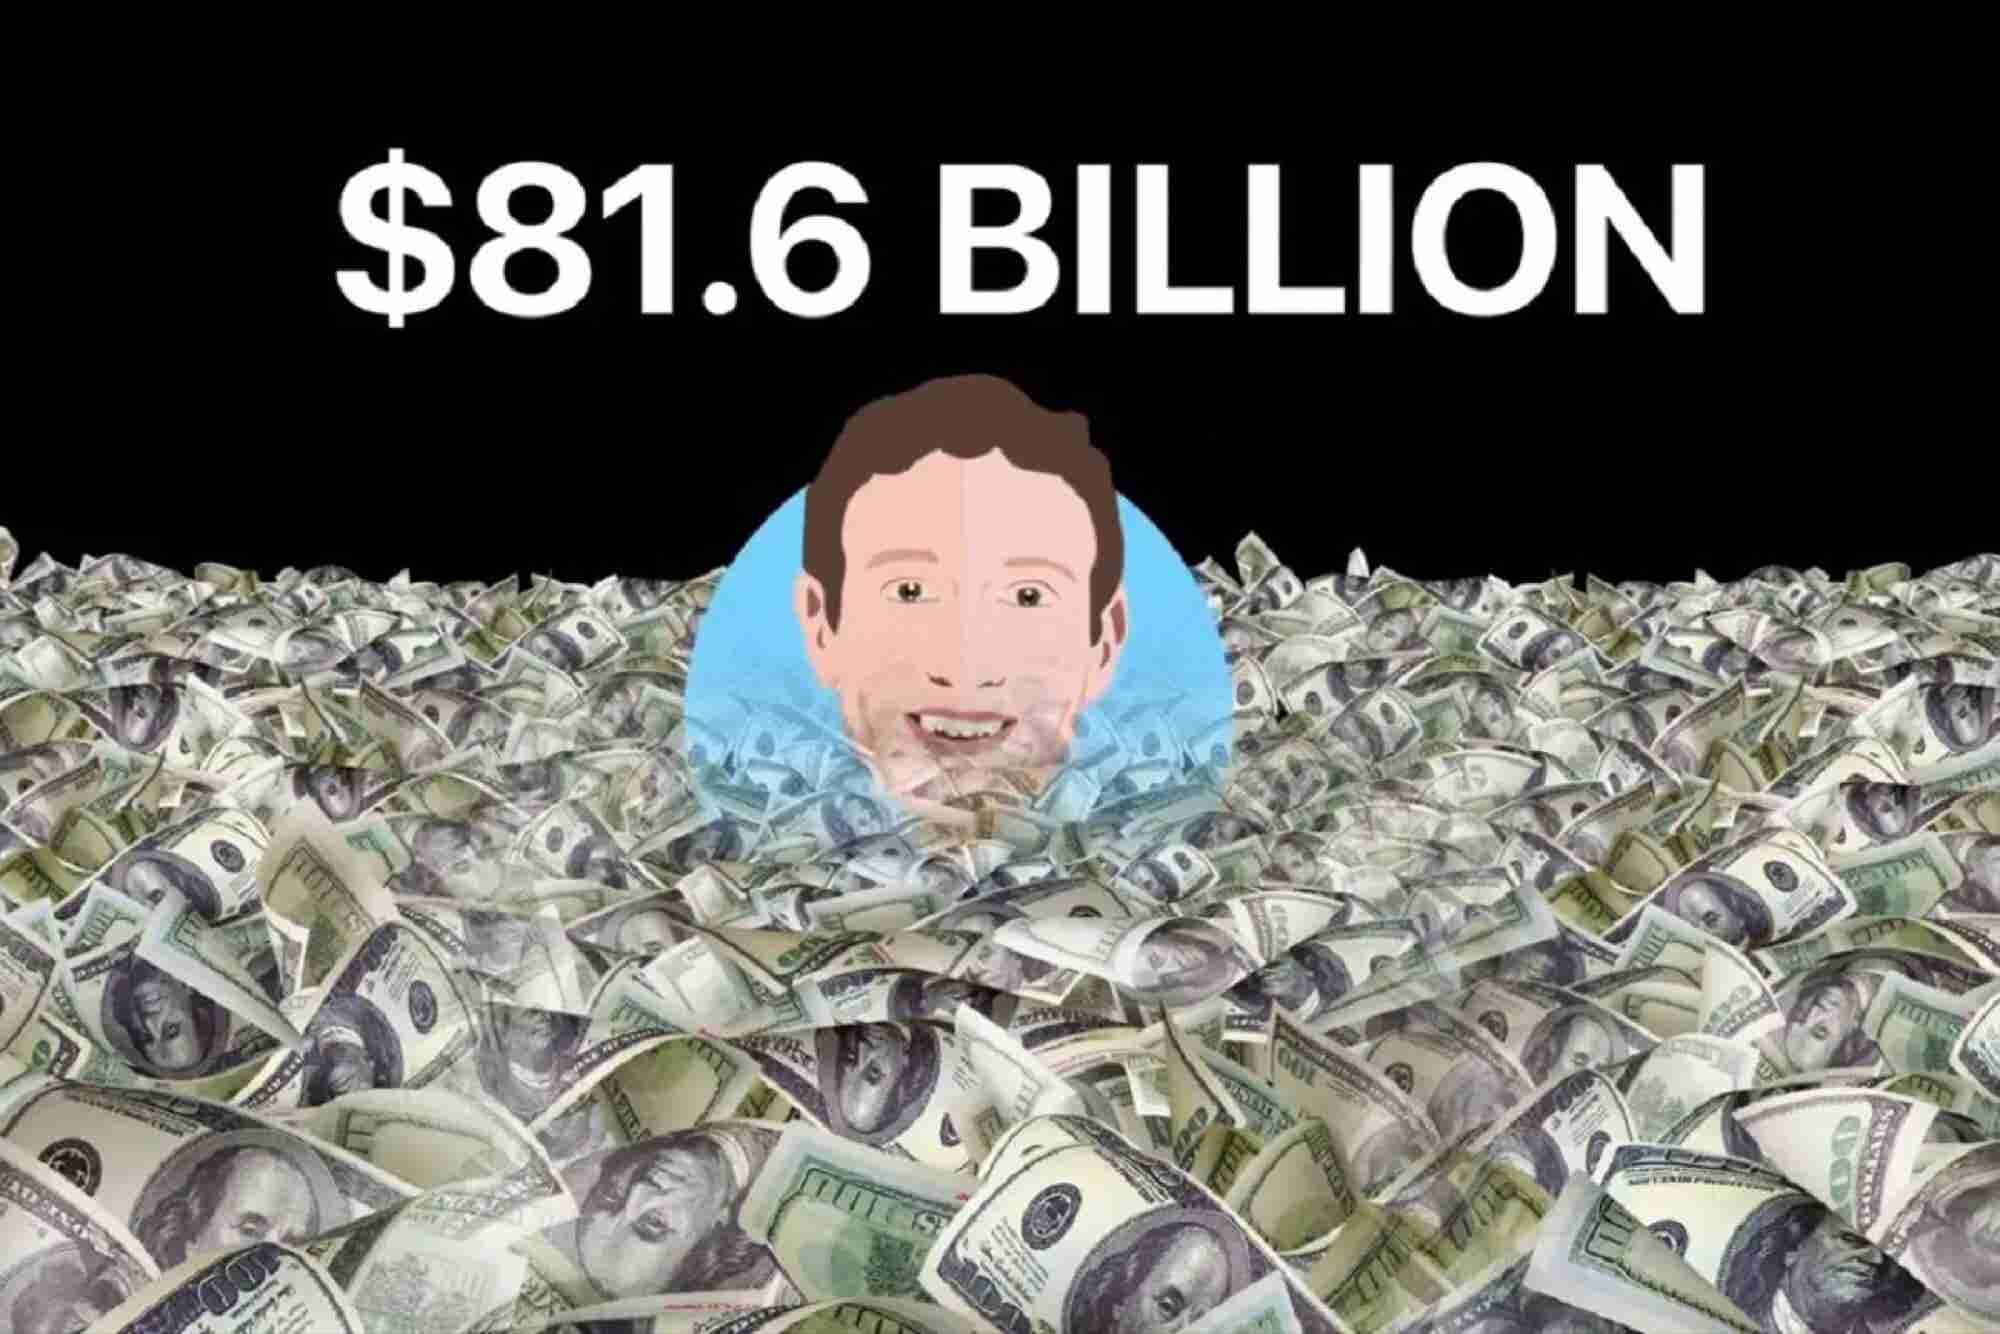 Mark Zuckerberg Becomes World's Third Richest Person: 4 Things to Know Today